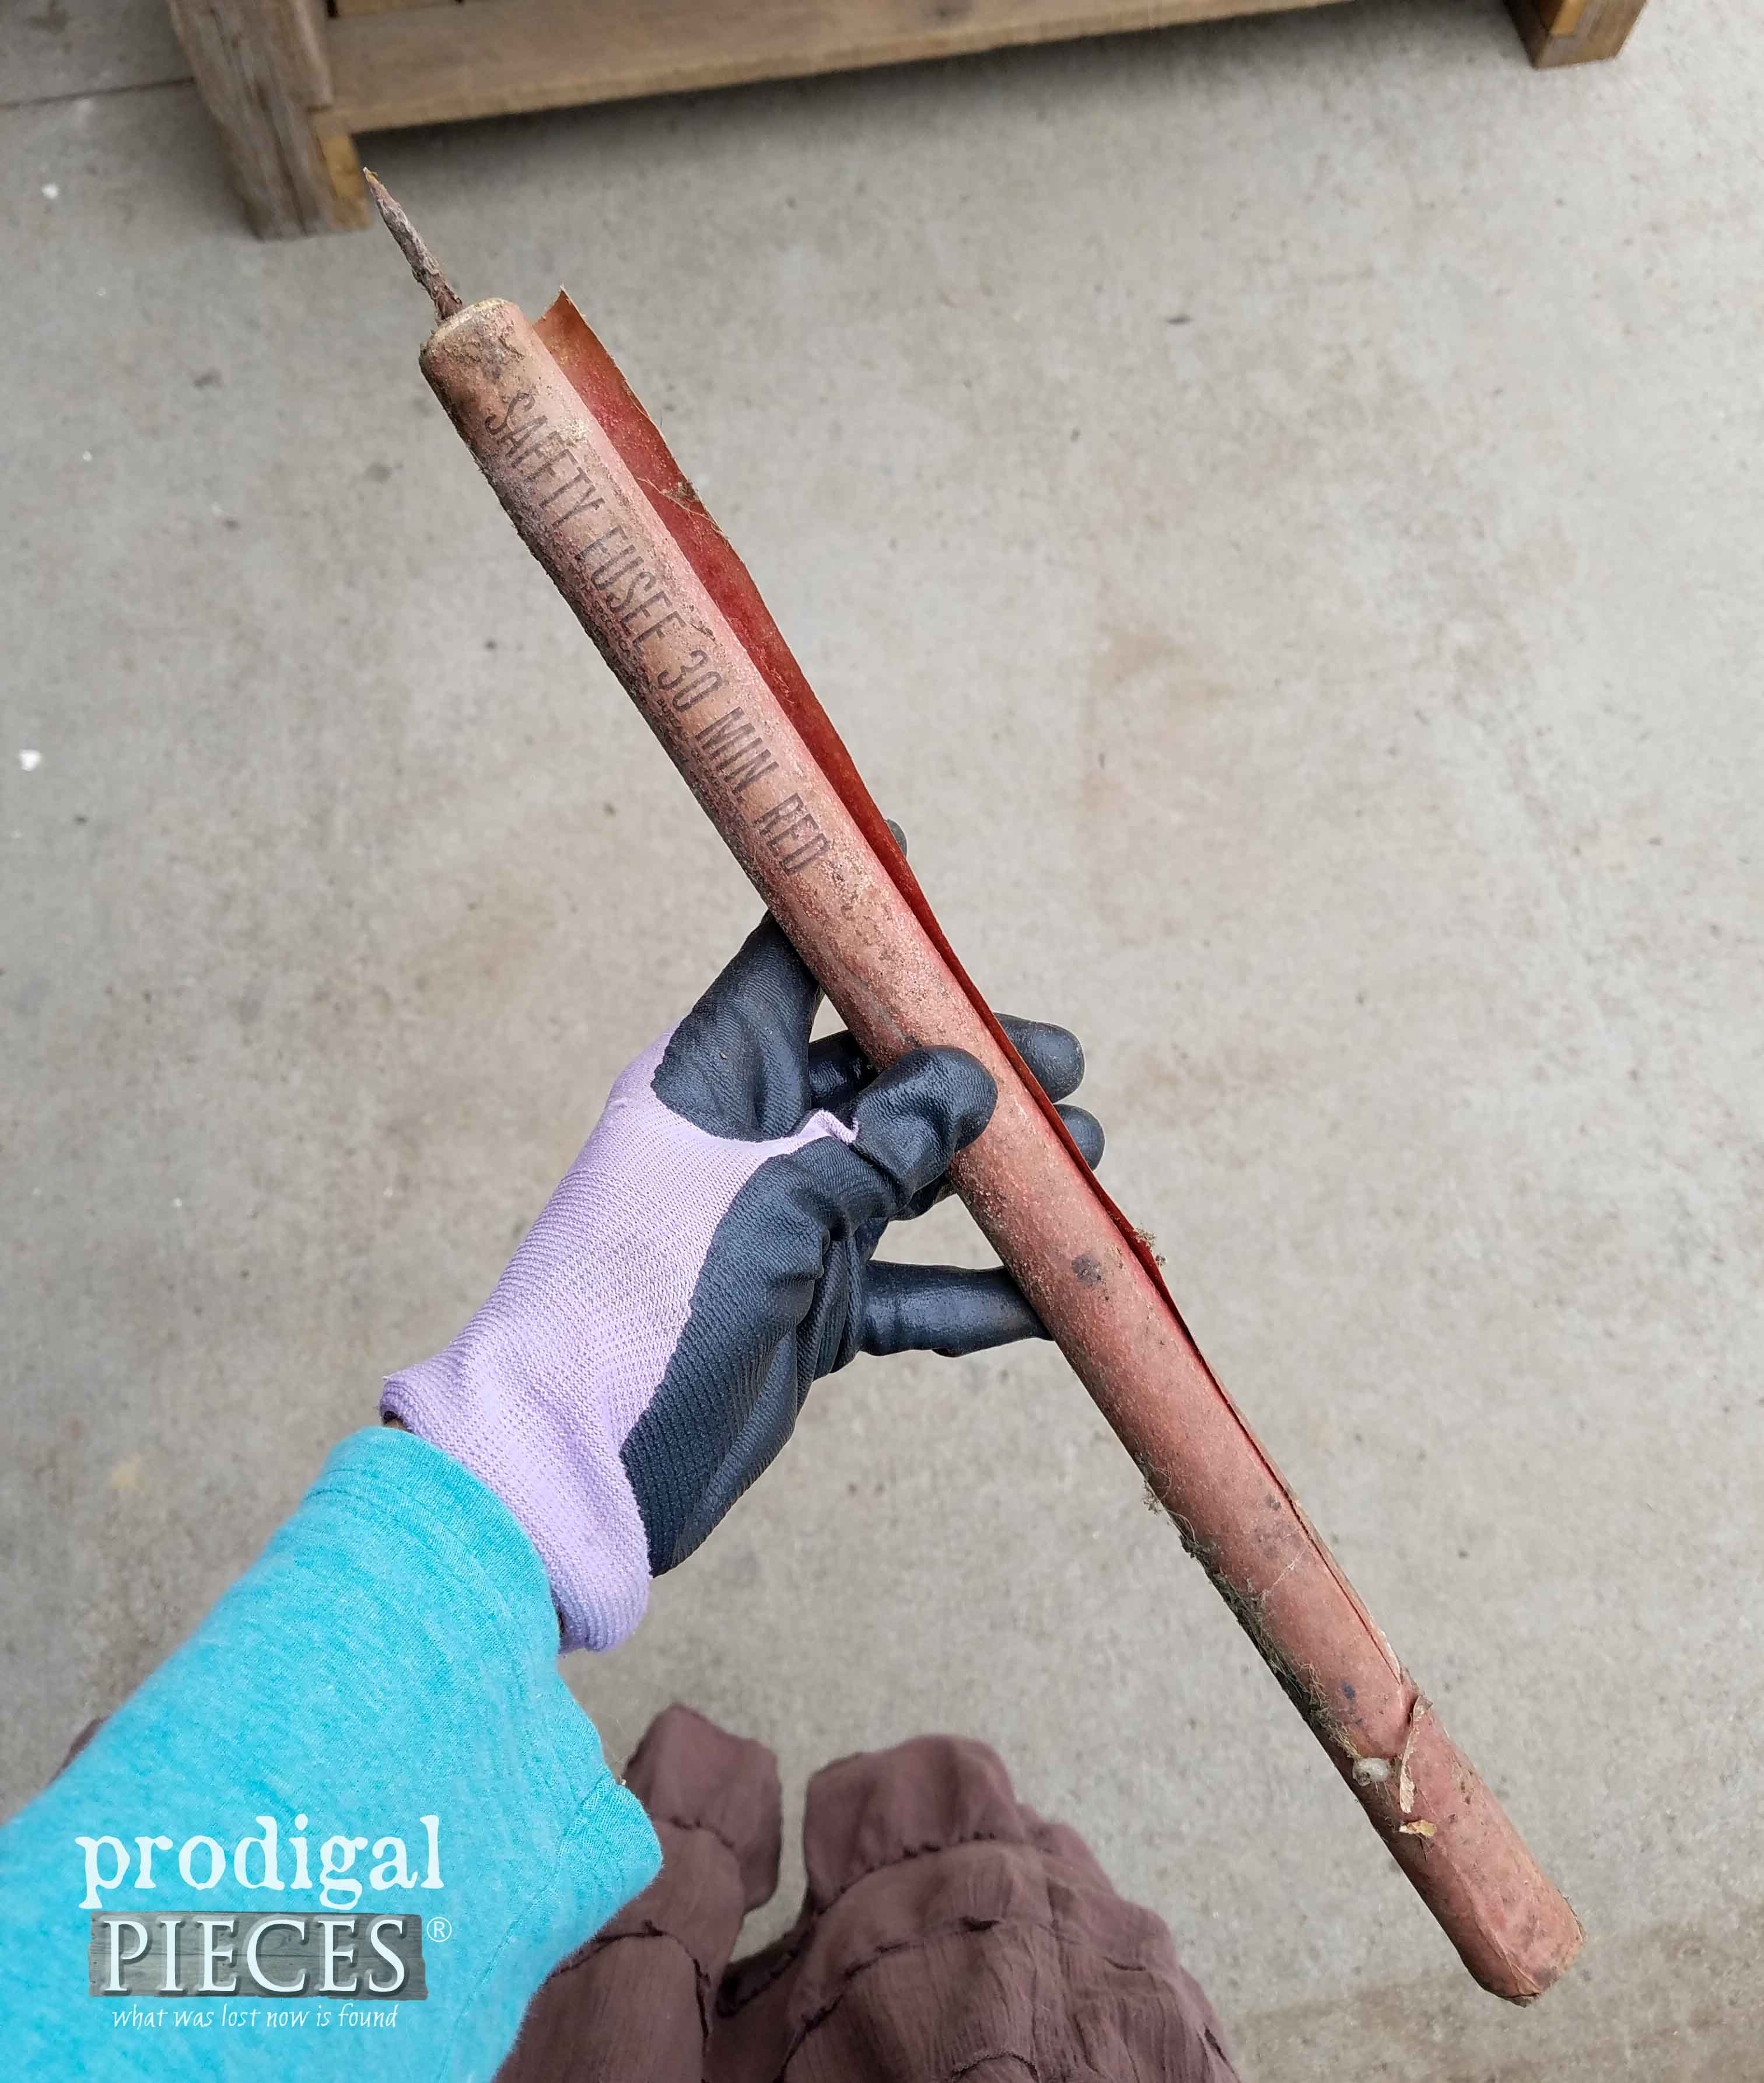 HUGE flare found inside trashure workbench | Prodigal Pieces | prodigalpieces.com